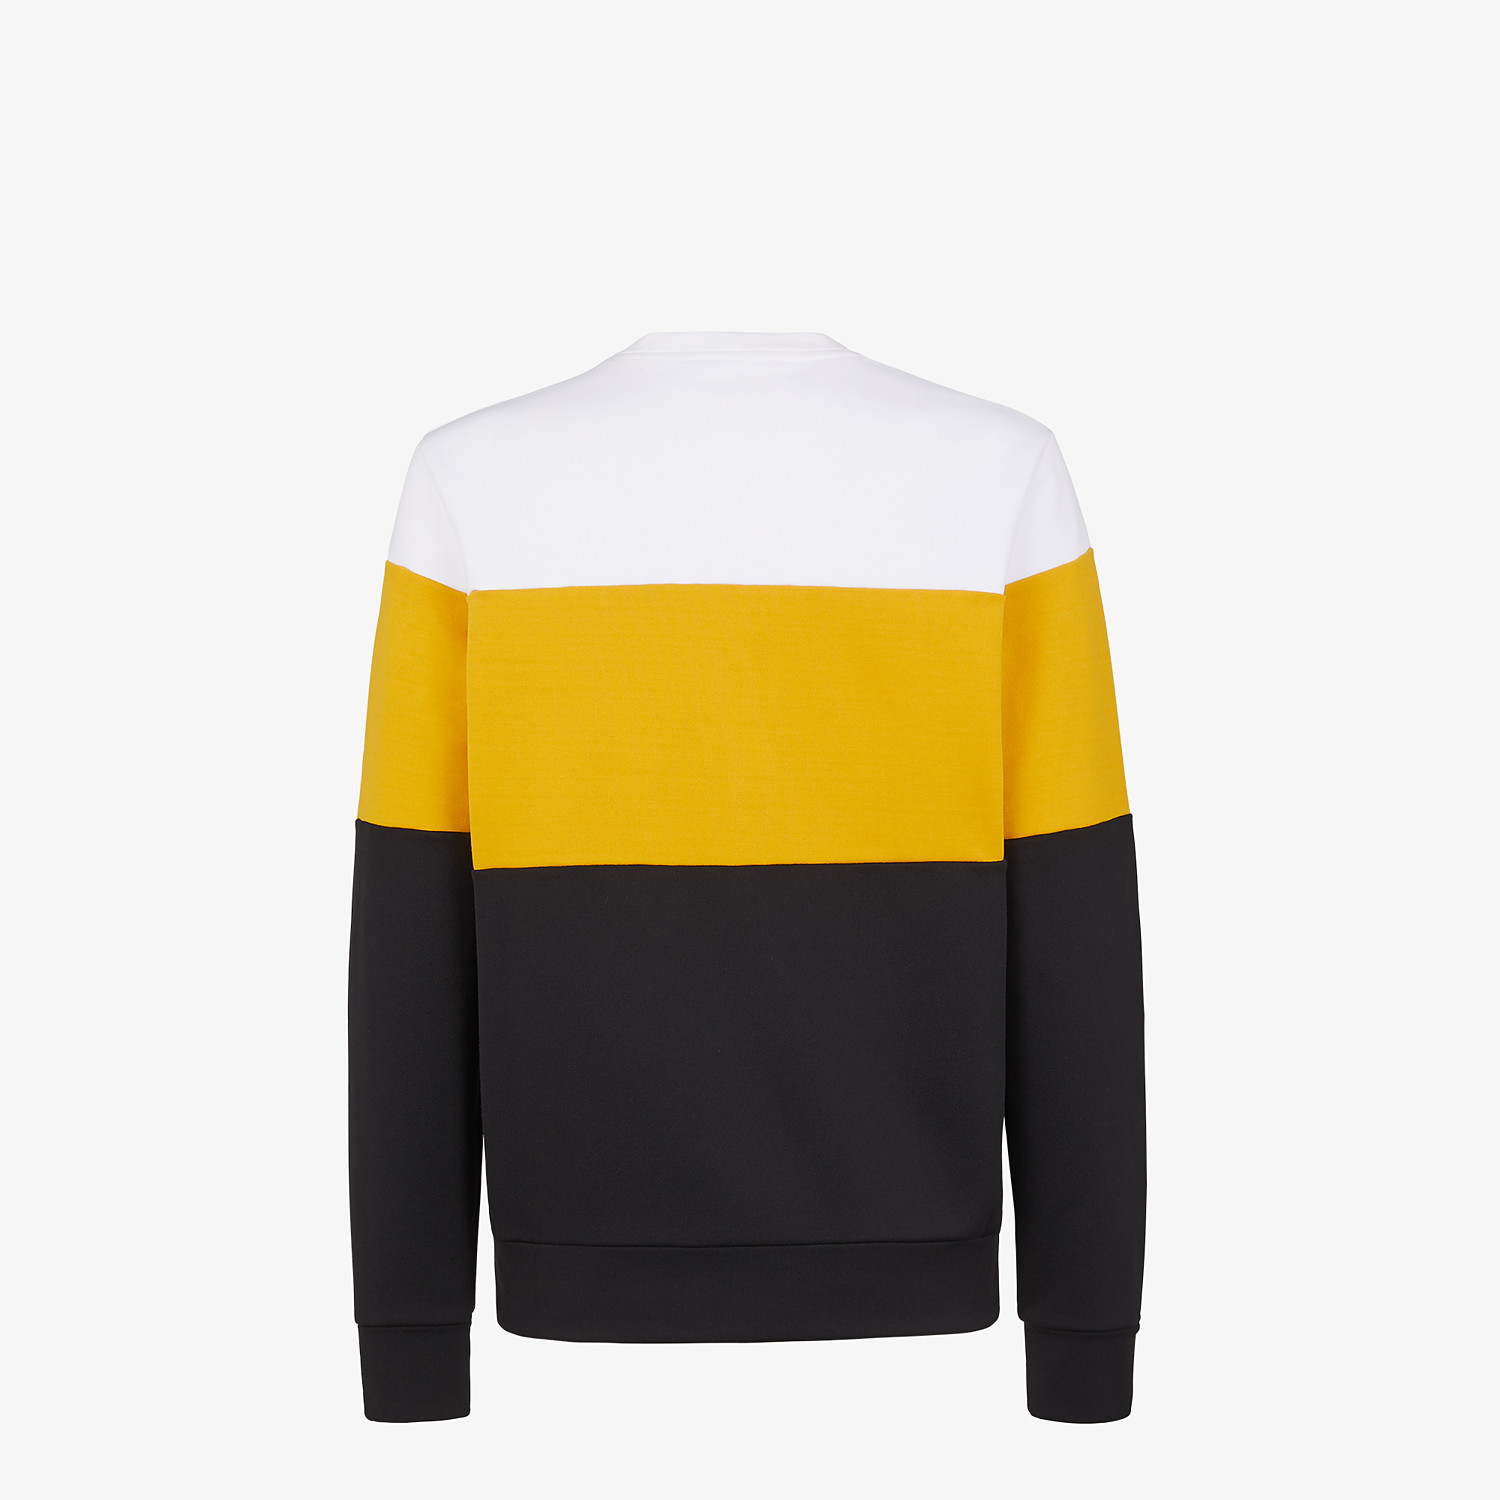 FENDI SWEATSHIRT - Multicolor cotton sweatshirt - view 2 detail